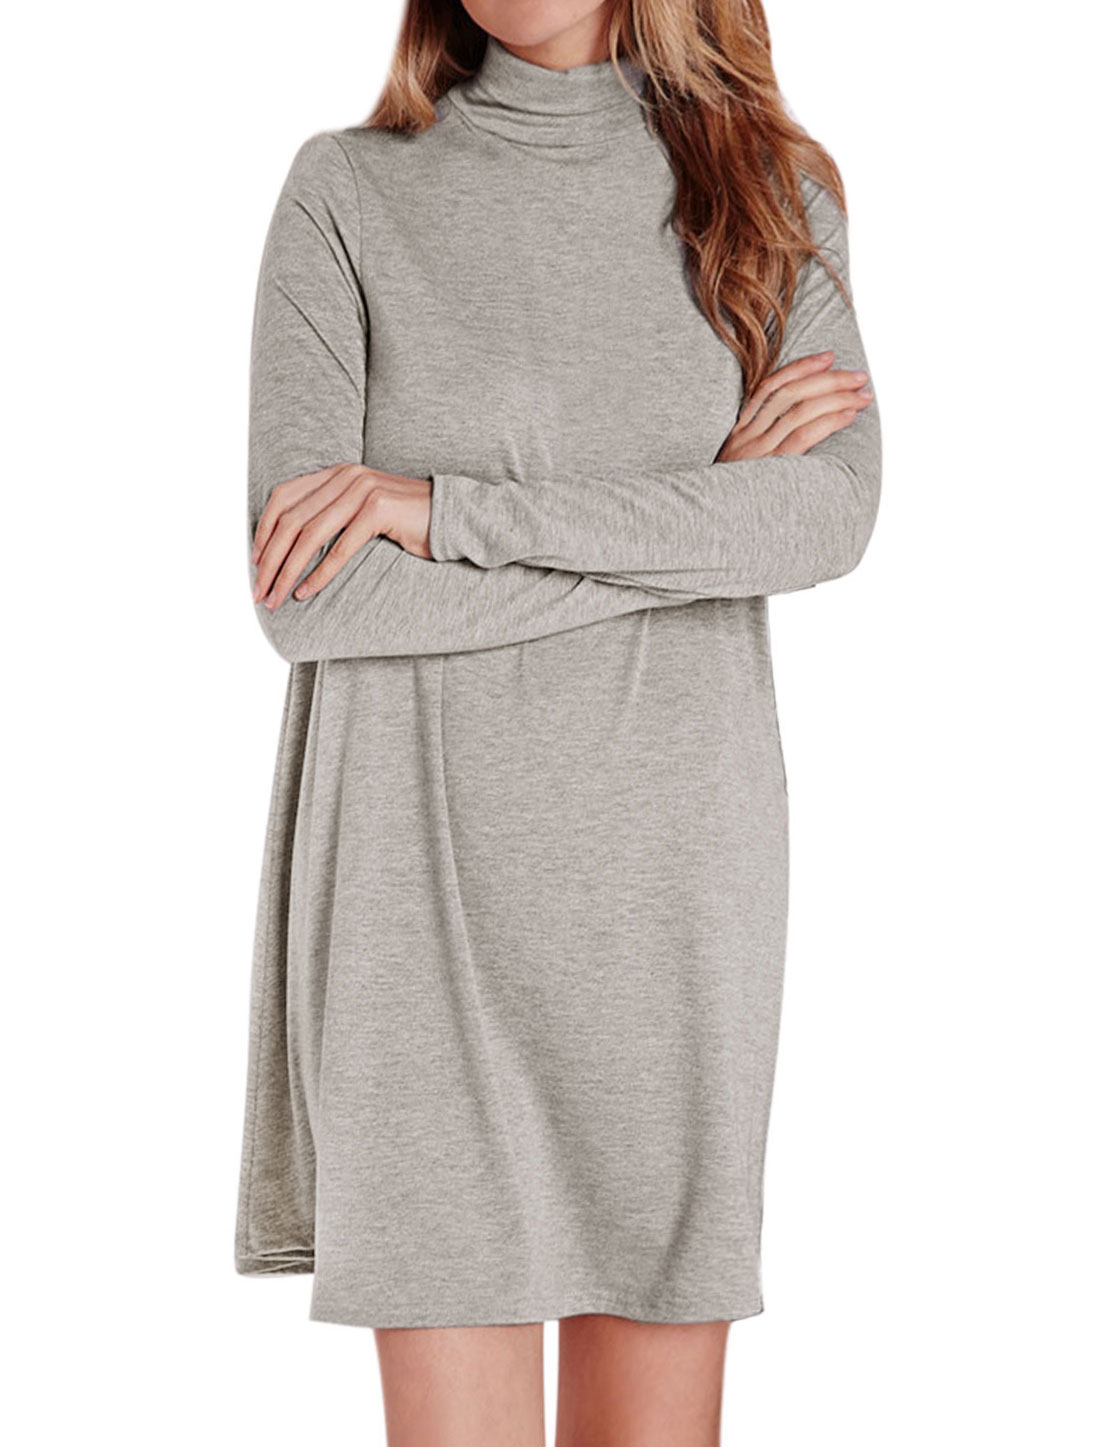 Women Turtle Neck Long Sleeves Loose Fit Tunic Dress Gray S